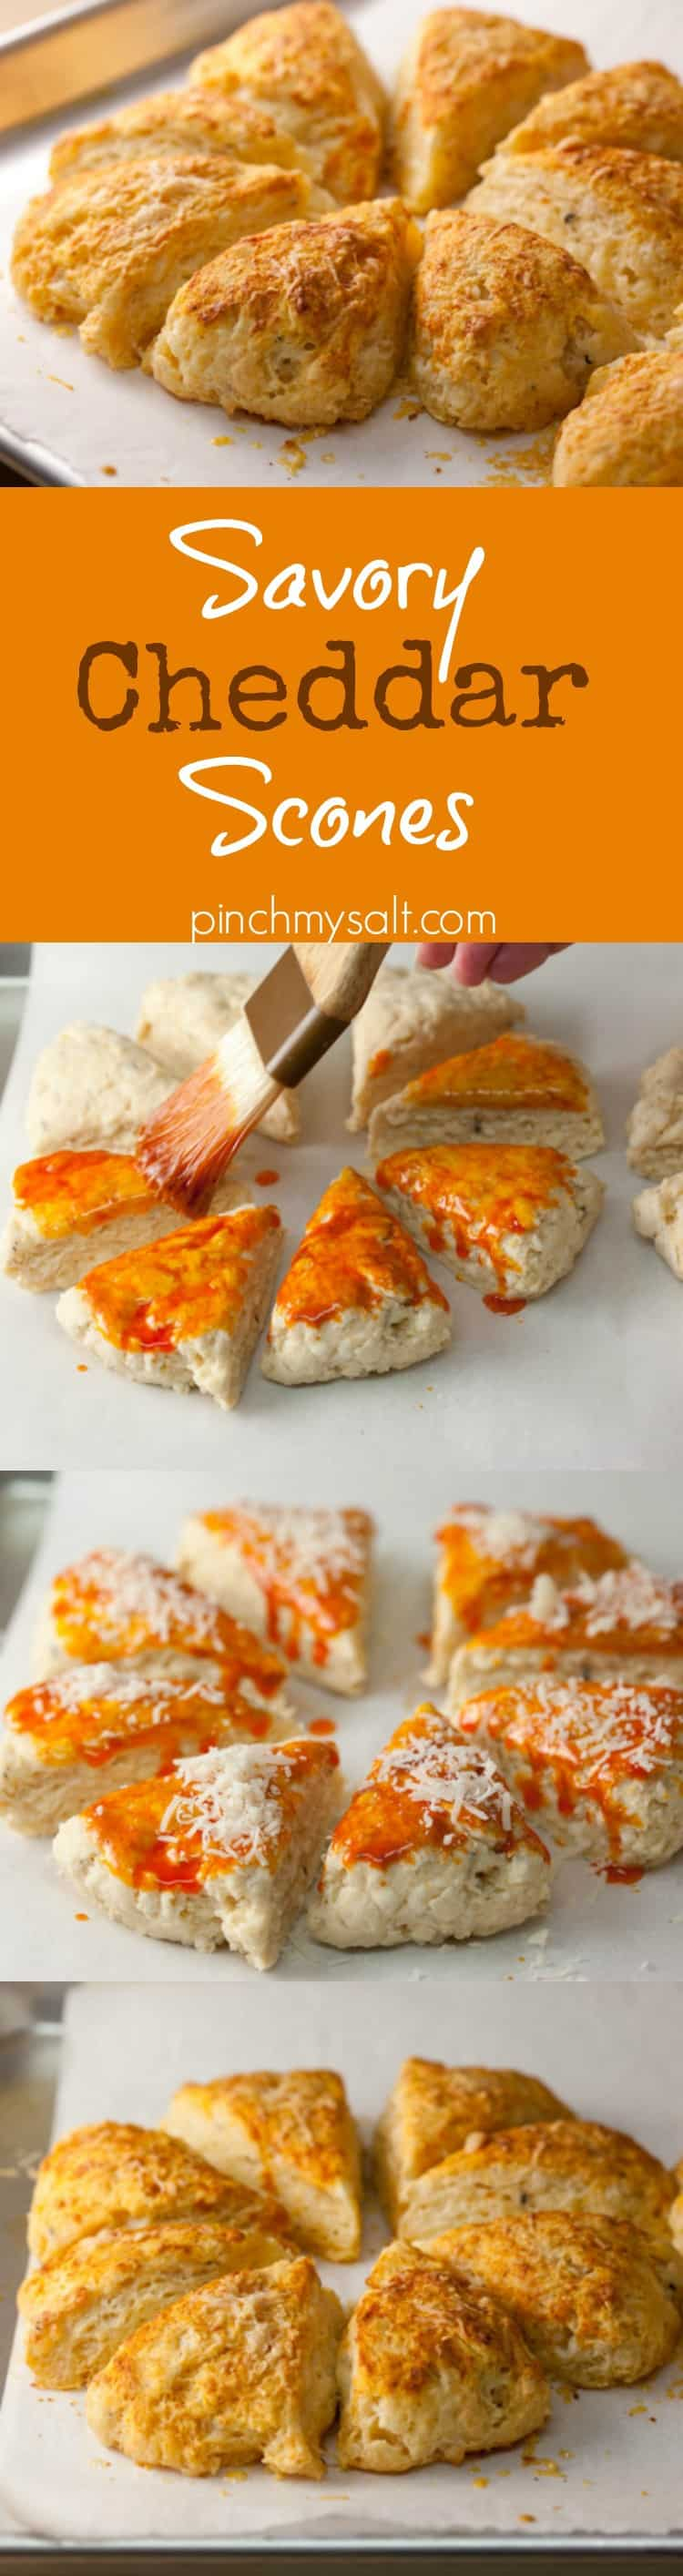 These savory cheddar scones made with buttermilk and brushed with smoked paprika butter are tender, flavorful, and easy to make. Perfect with soup or salad! | pinchmysalt.com